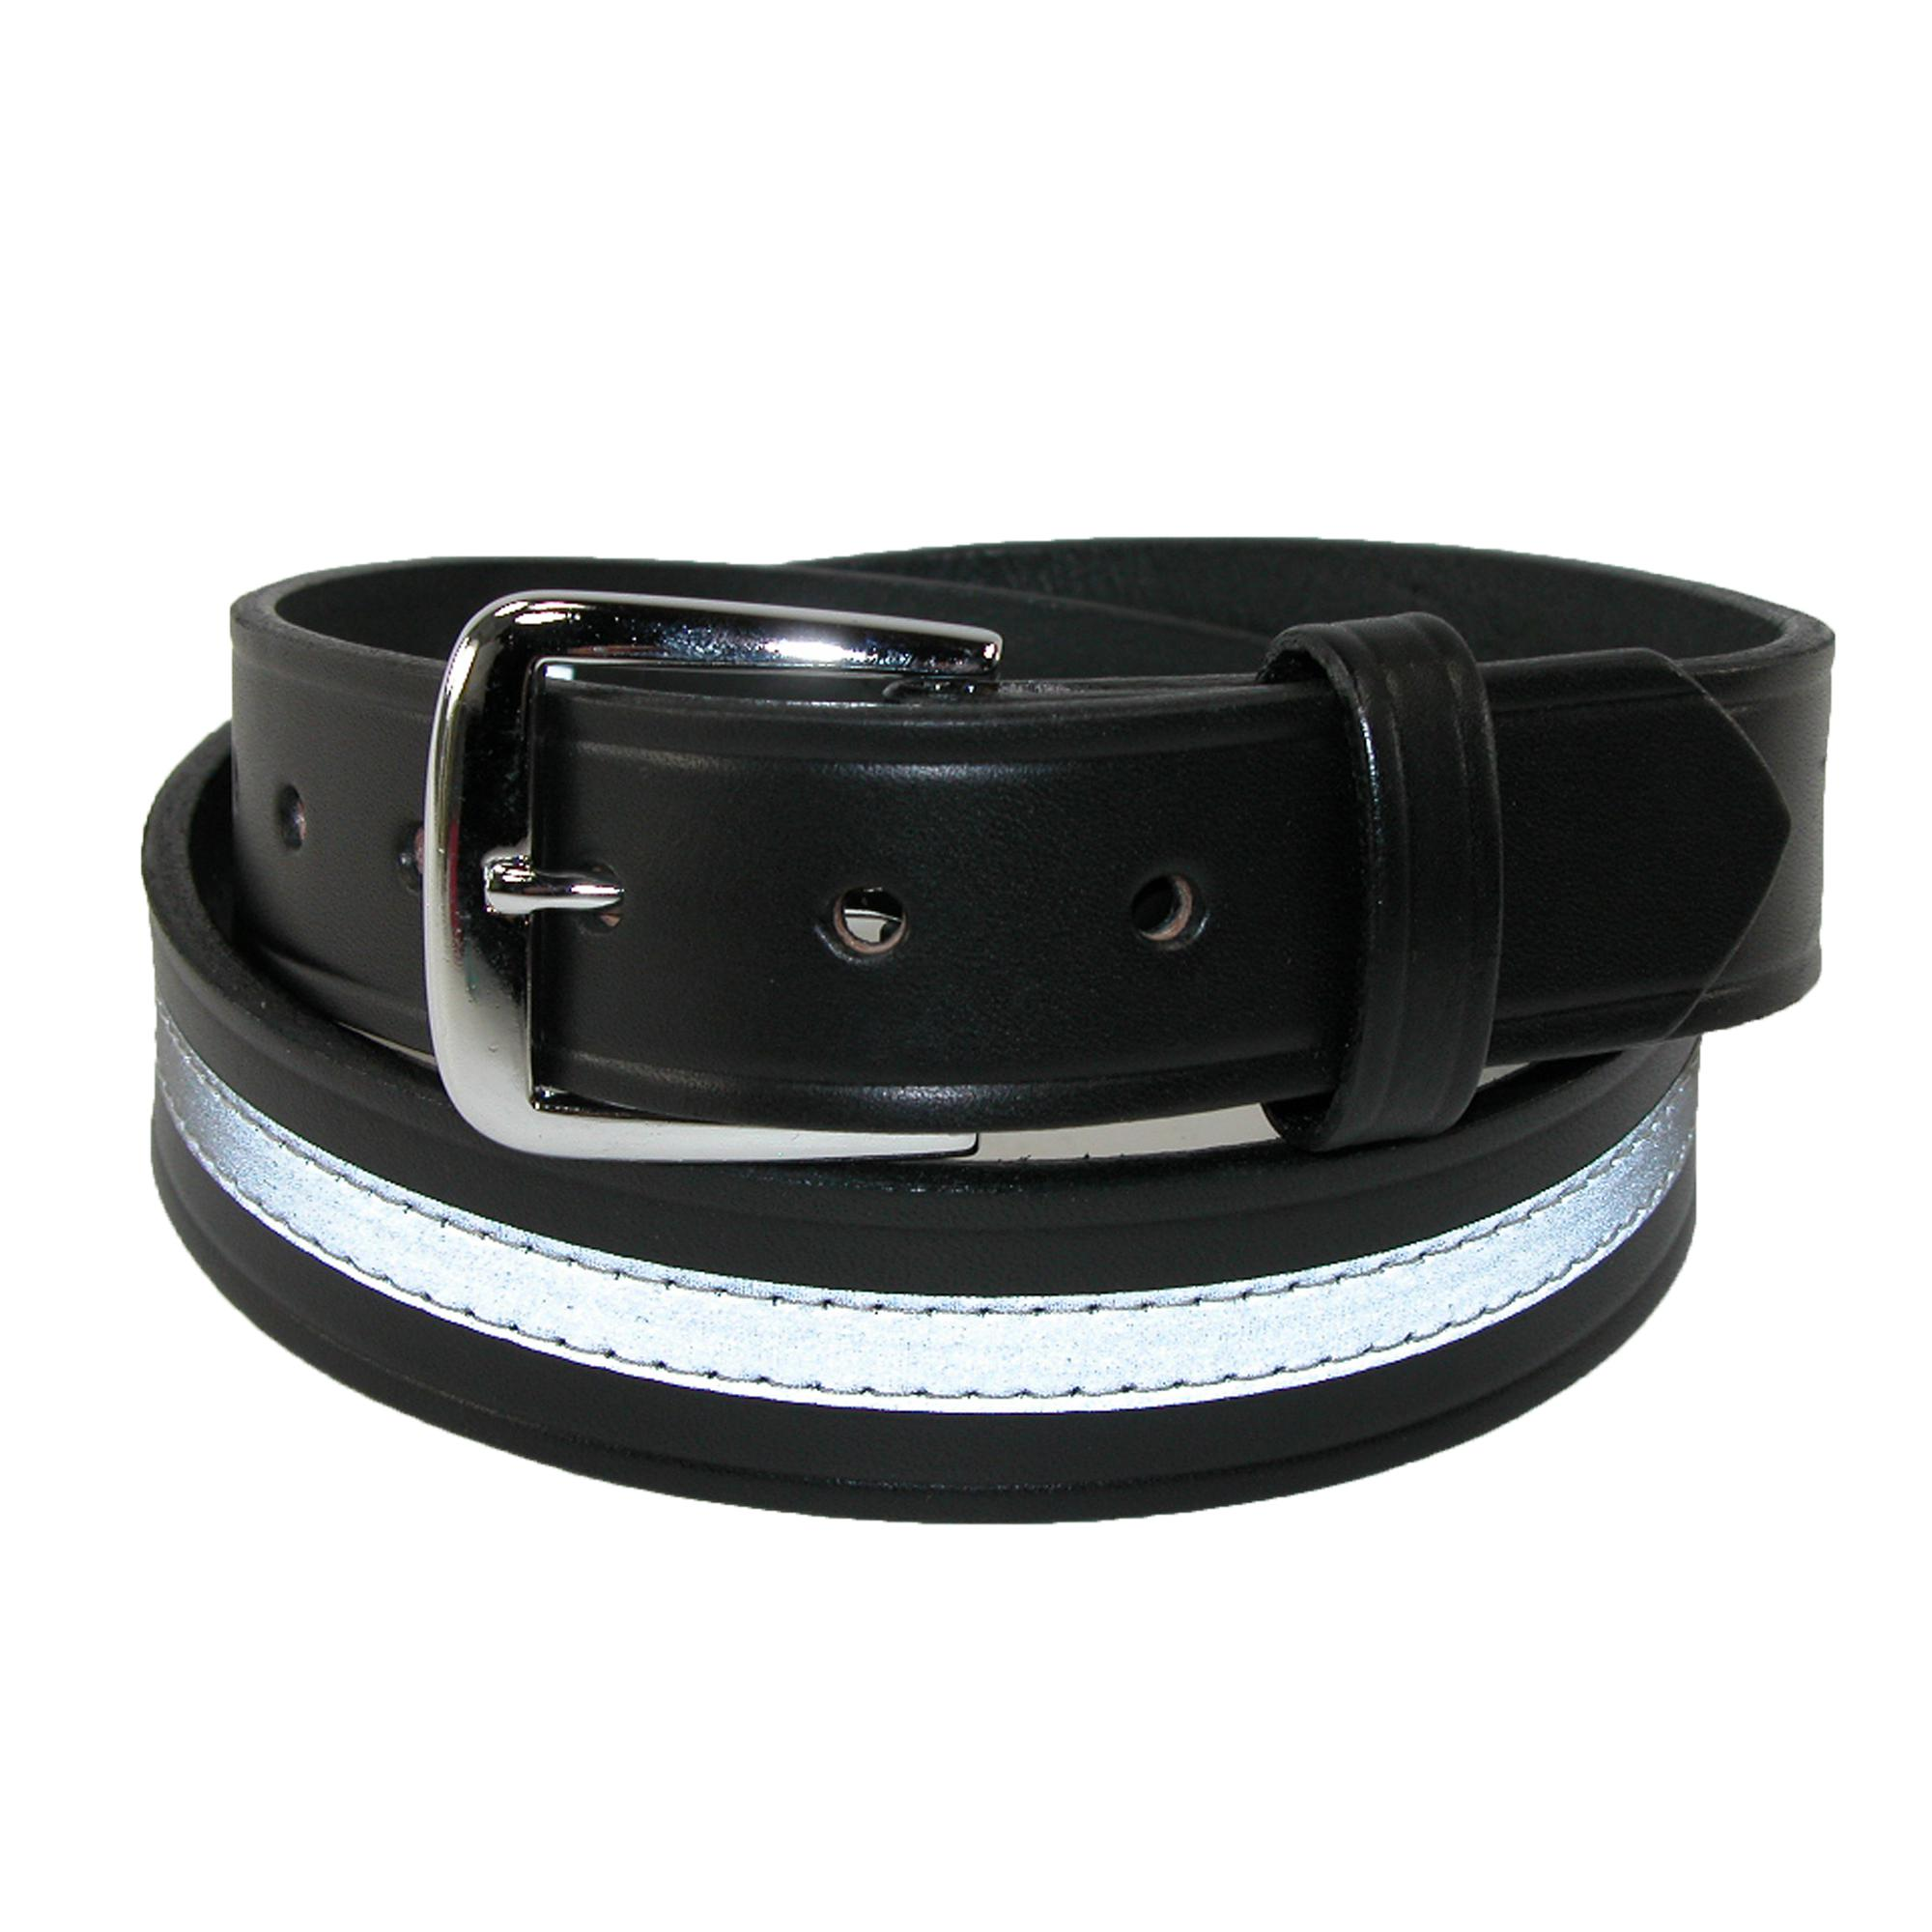 Boston Leather Men's Leather Reflective Safety Work Belt